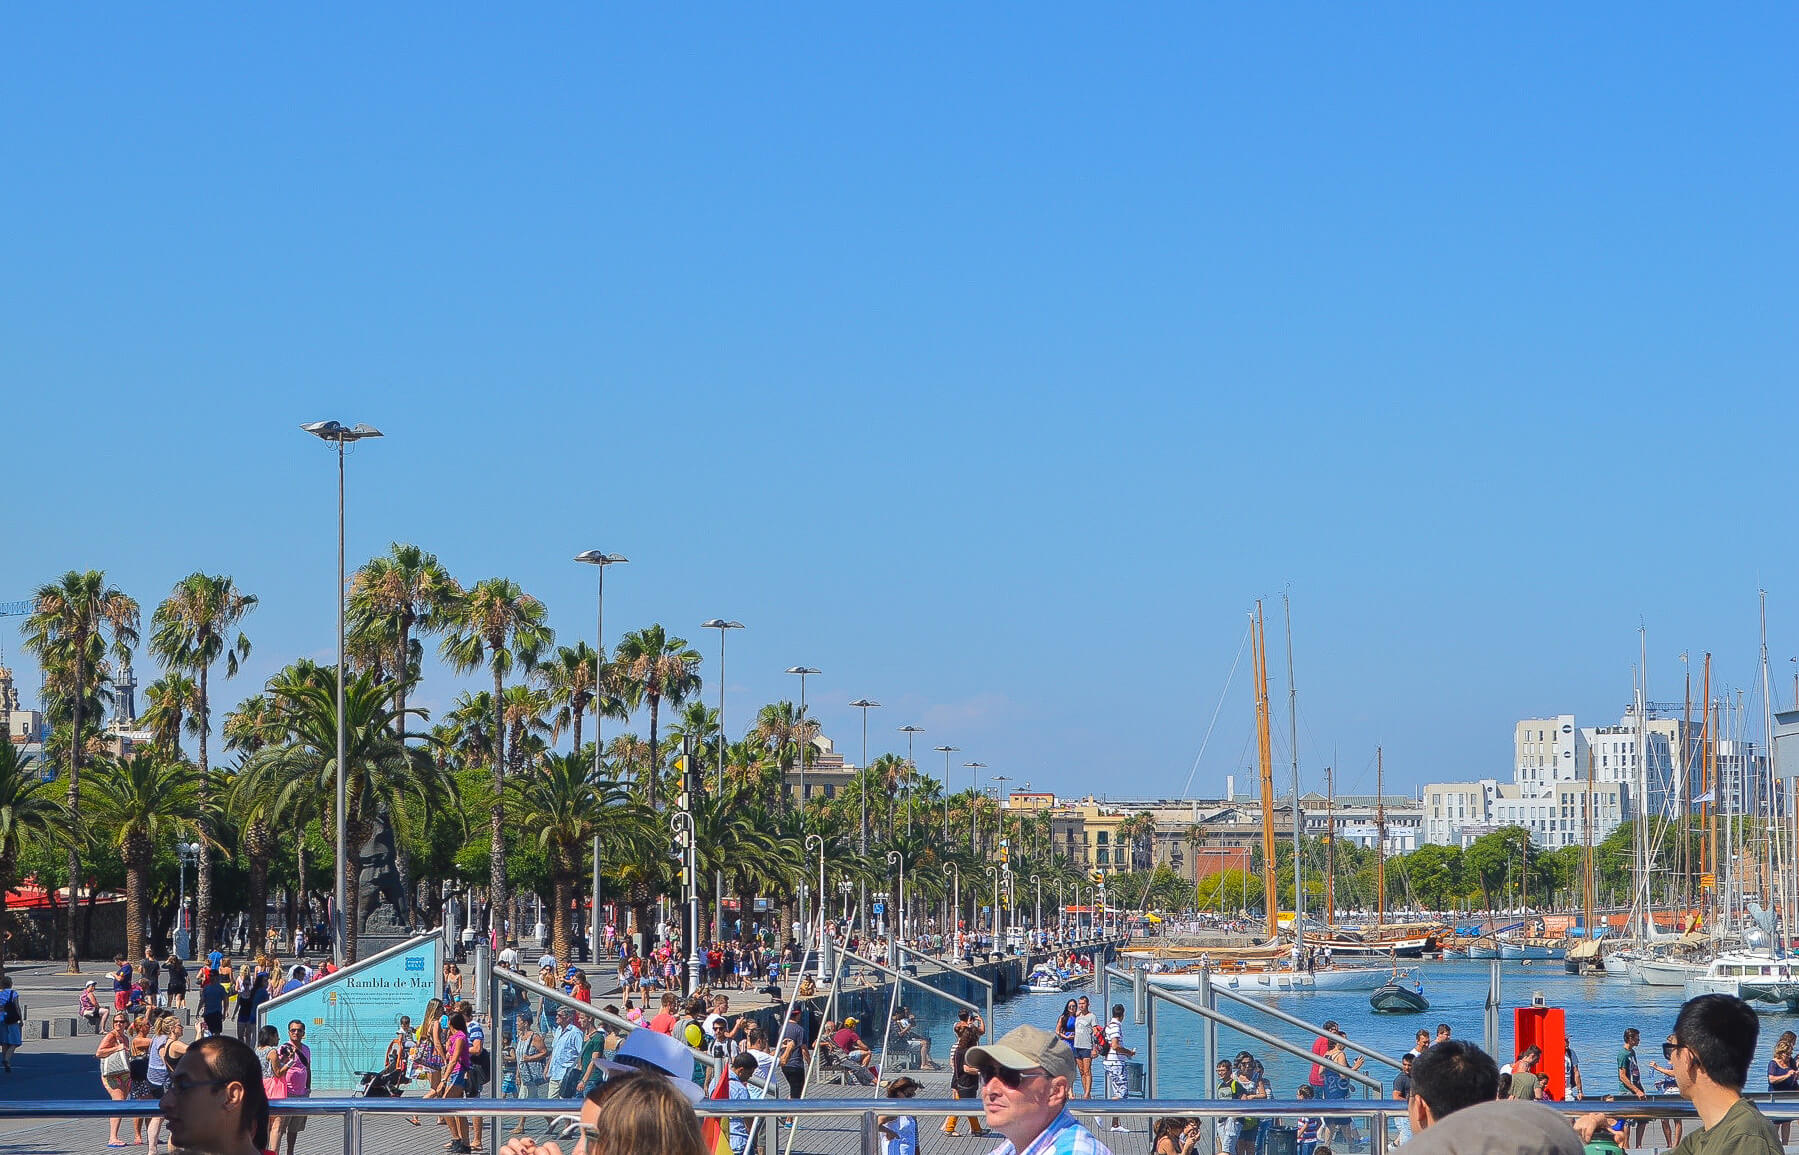 crowds along waterfront near rows of palm trees in city